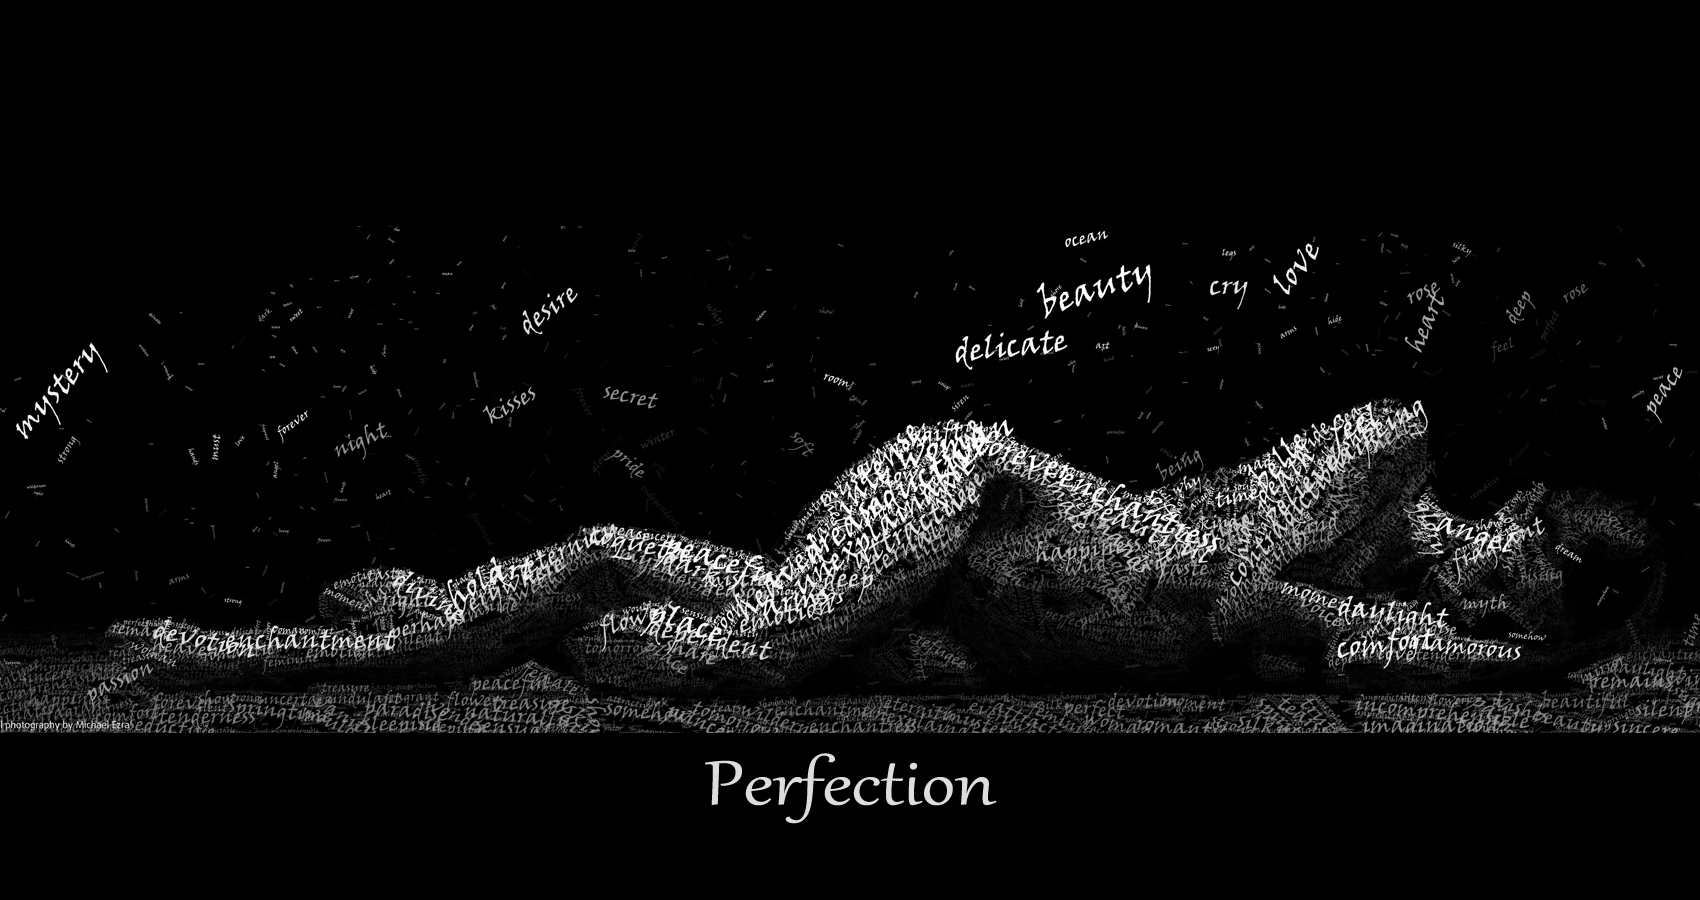 Perfection by Poetanp at Spillwords.com